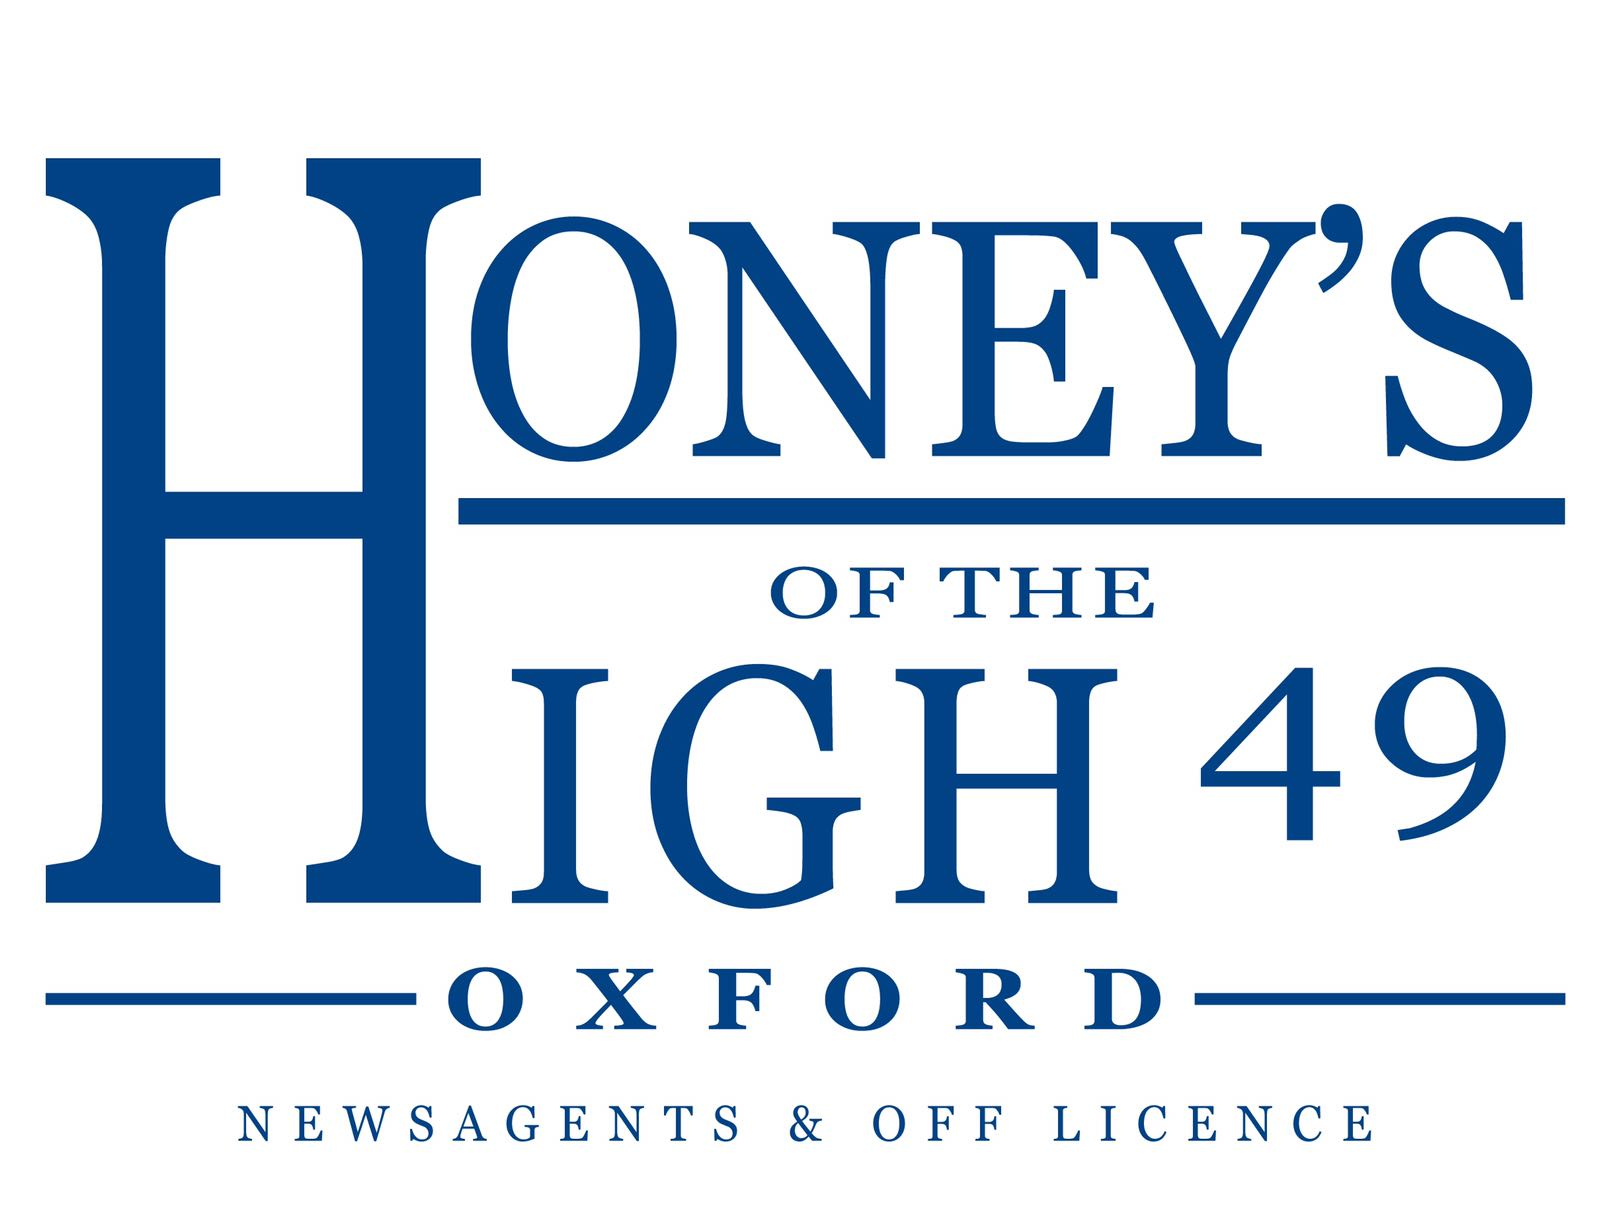 Honey's of the High logo